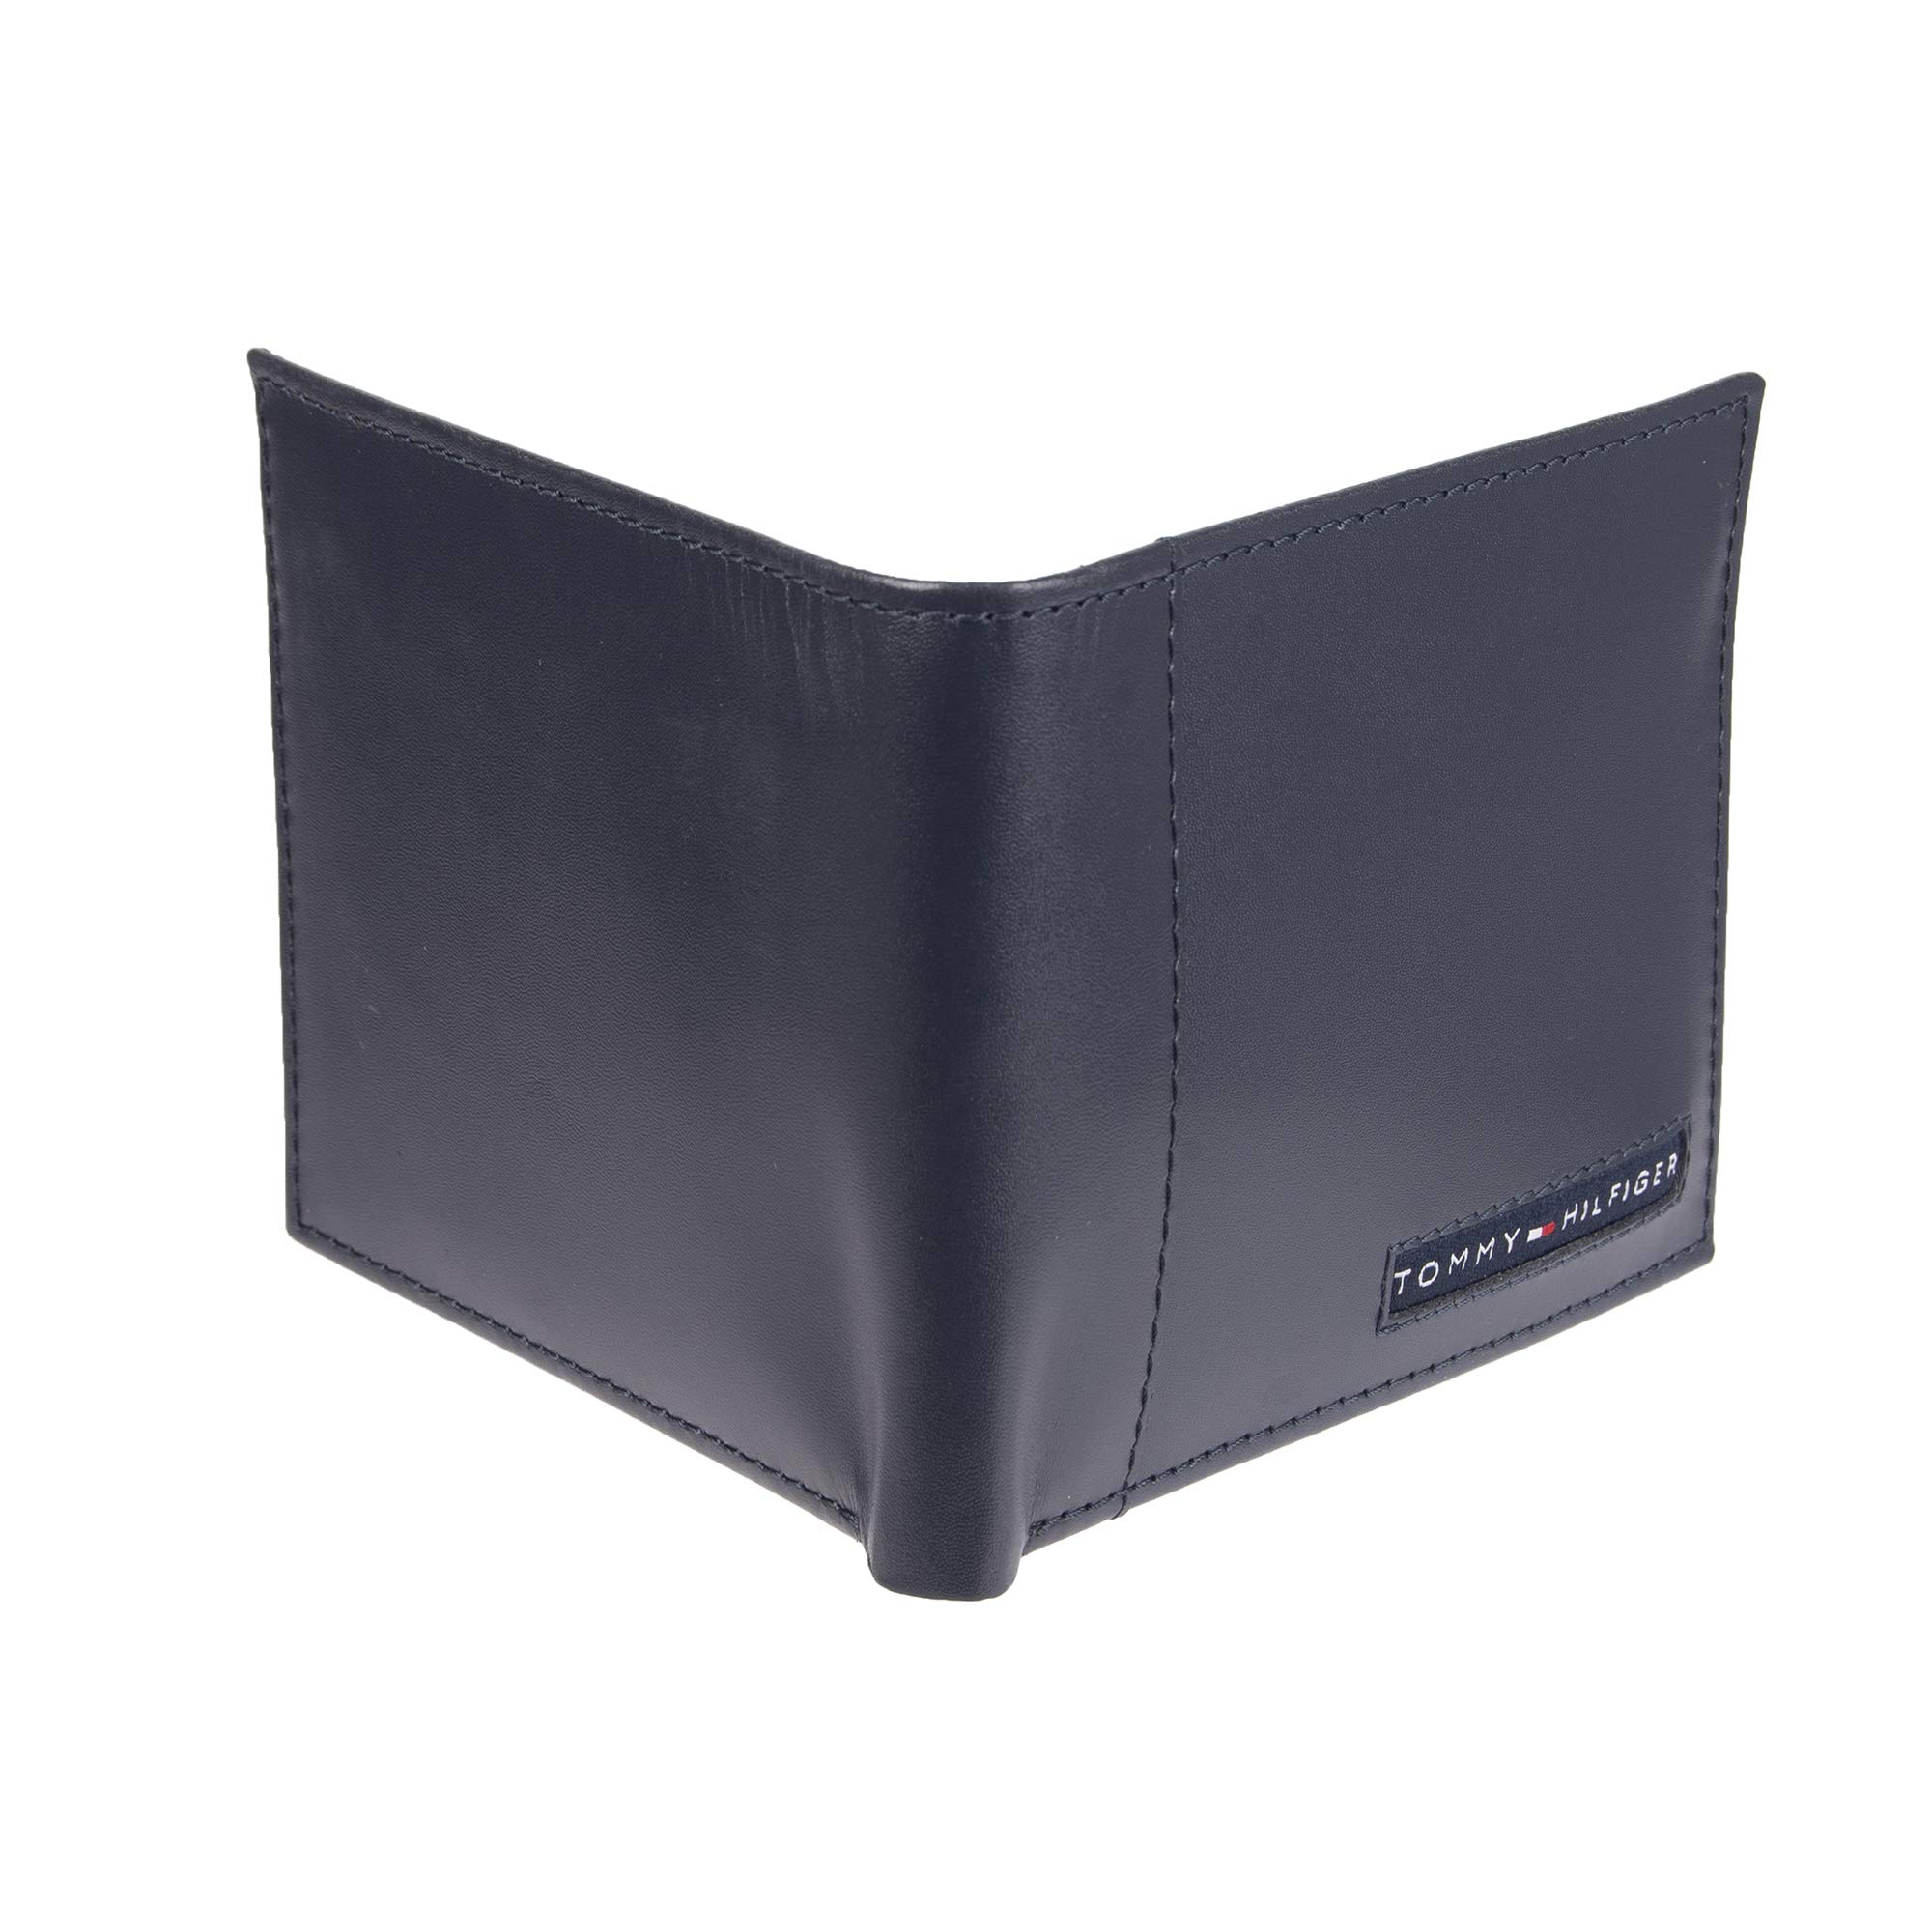 Tommy Hilfiger Men's Leather Wallet - RFID Blocking Slim Thin Bifold with Removable Card Holder and Gift Box, Navy Casual by Tommy Hilfiger (Image #4)